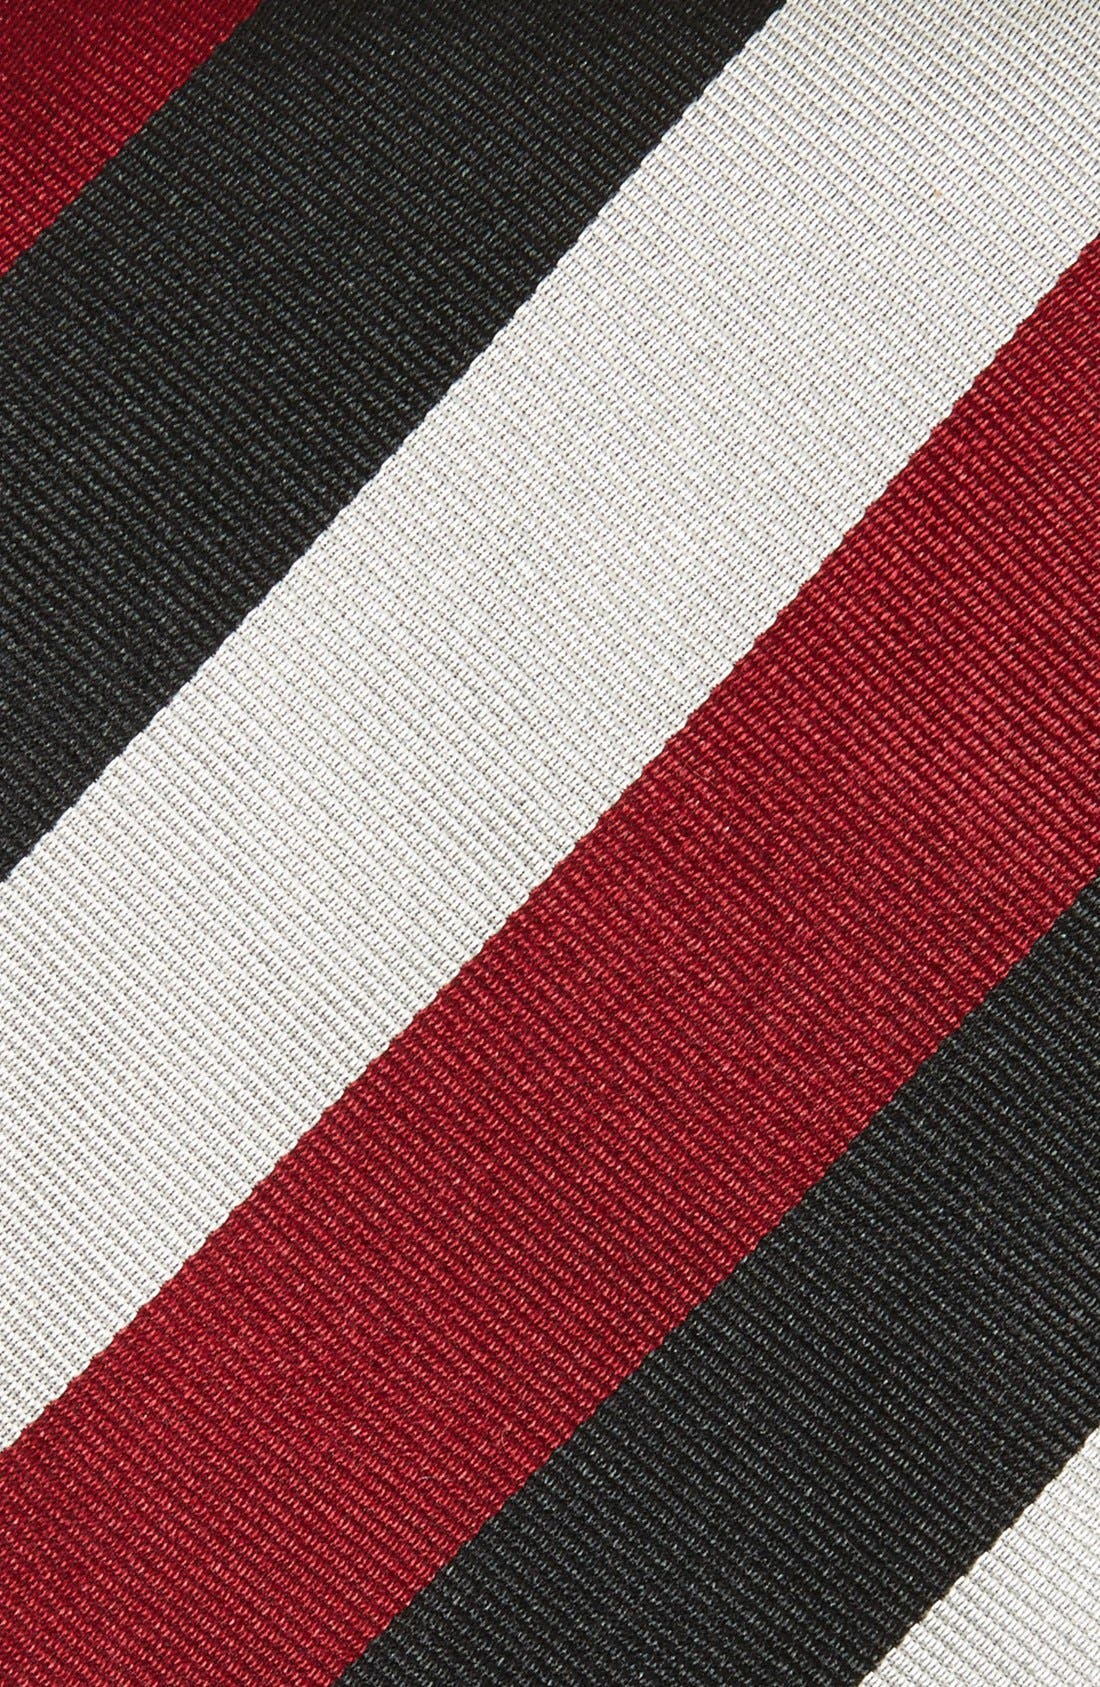 Stripe Silk Tie,                             Alternate thumbnail 2, color,                             001